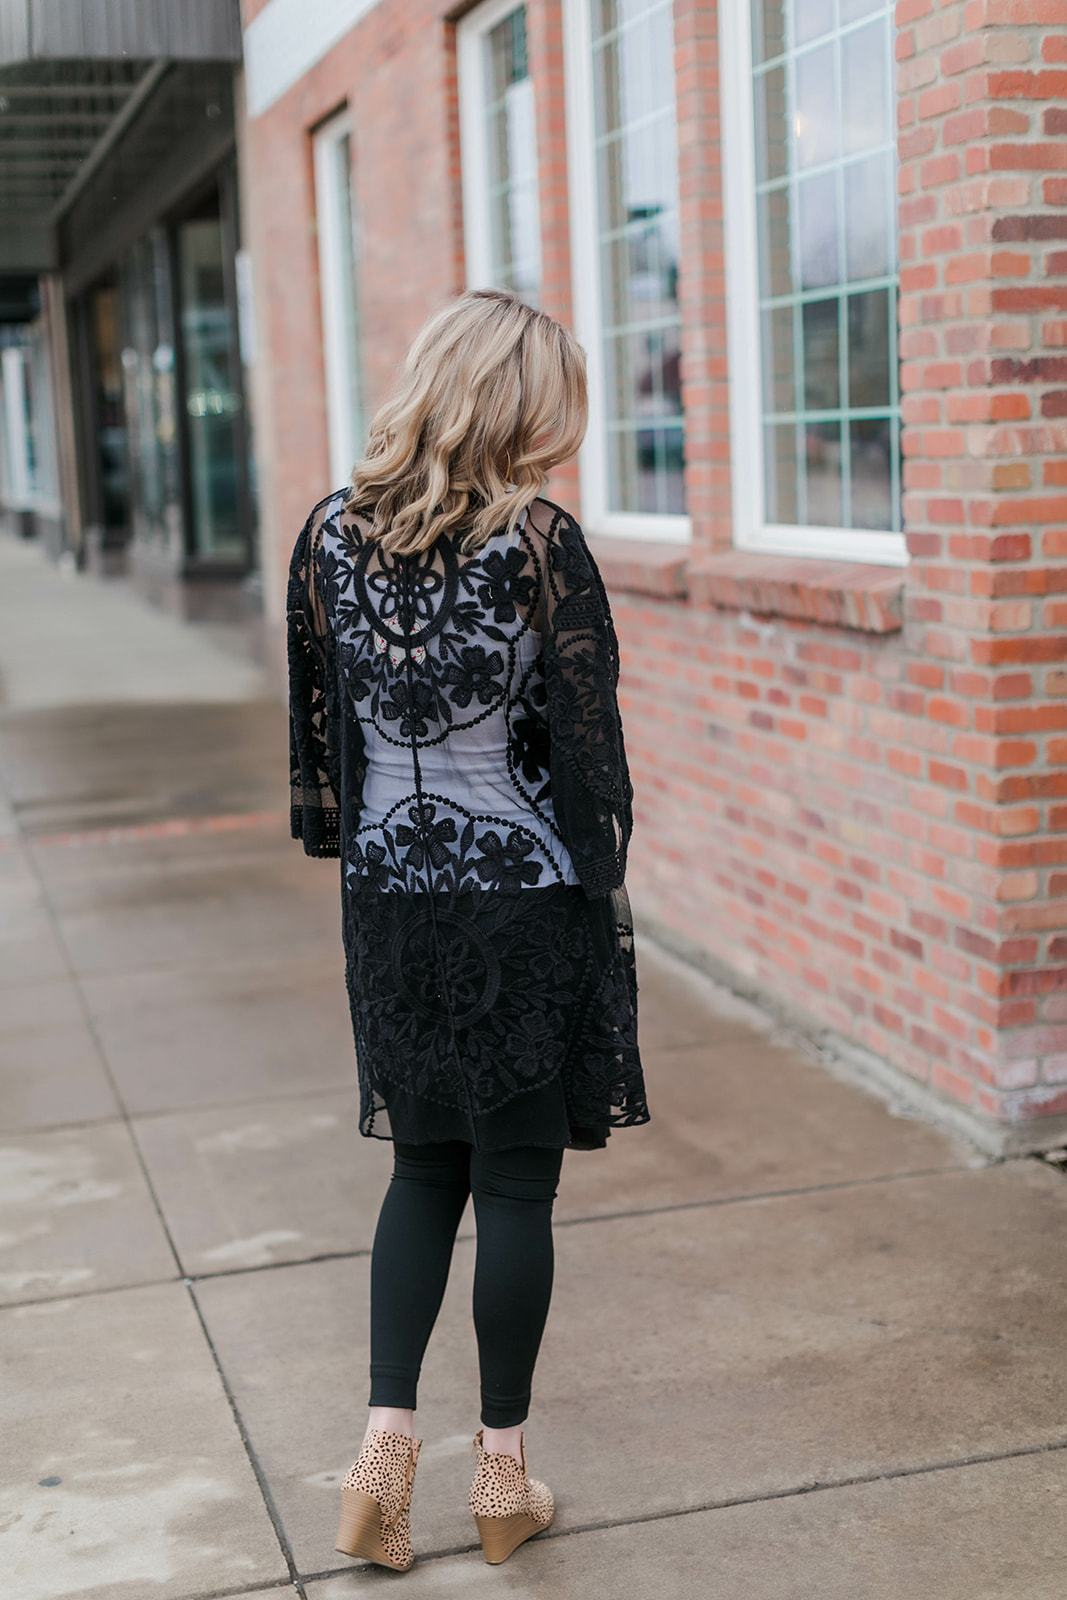 All Dolled Up Lace Cardigan - Lola Cerina Boutique